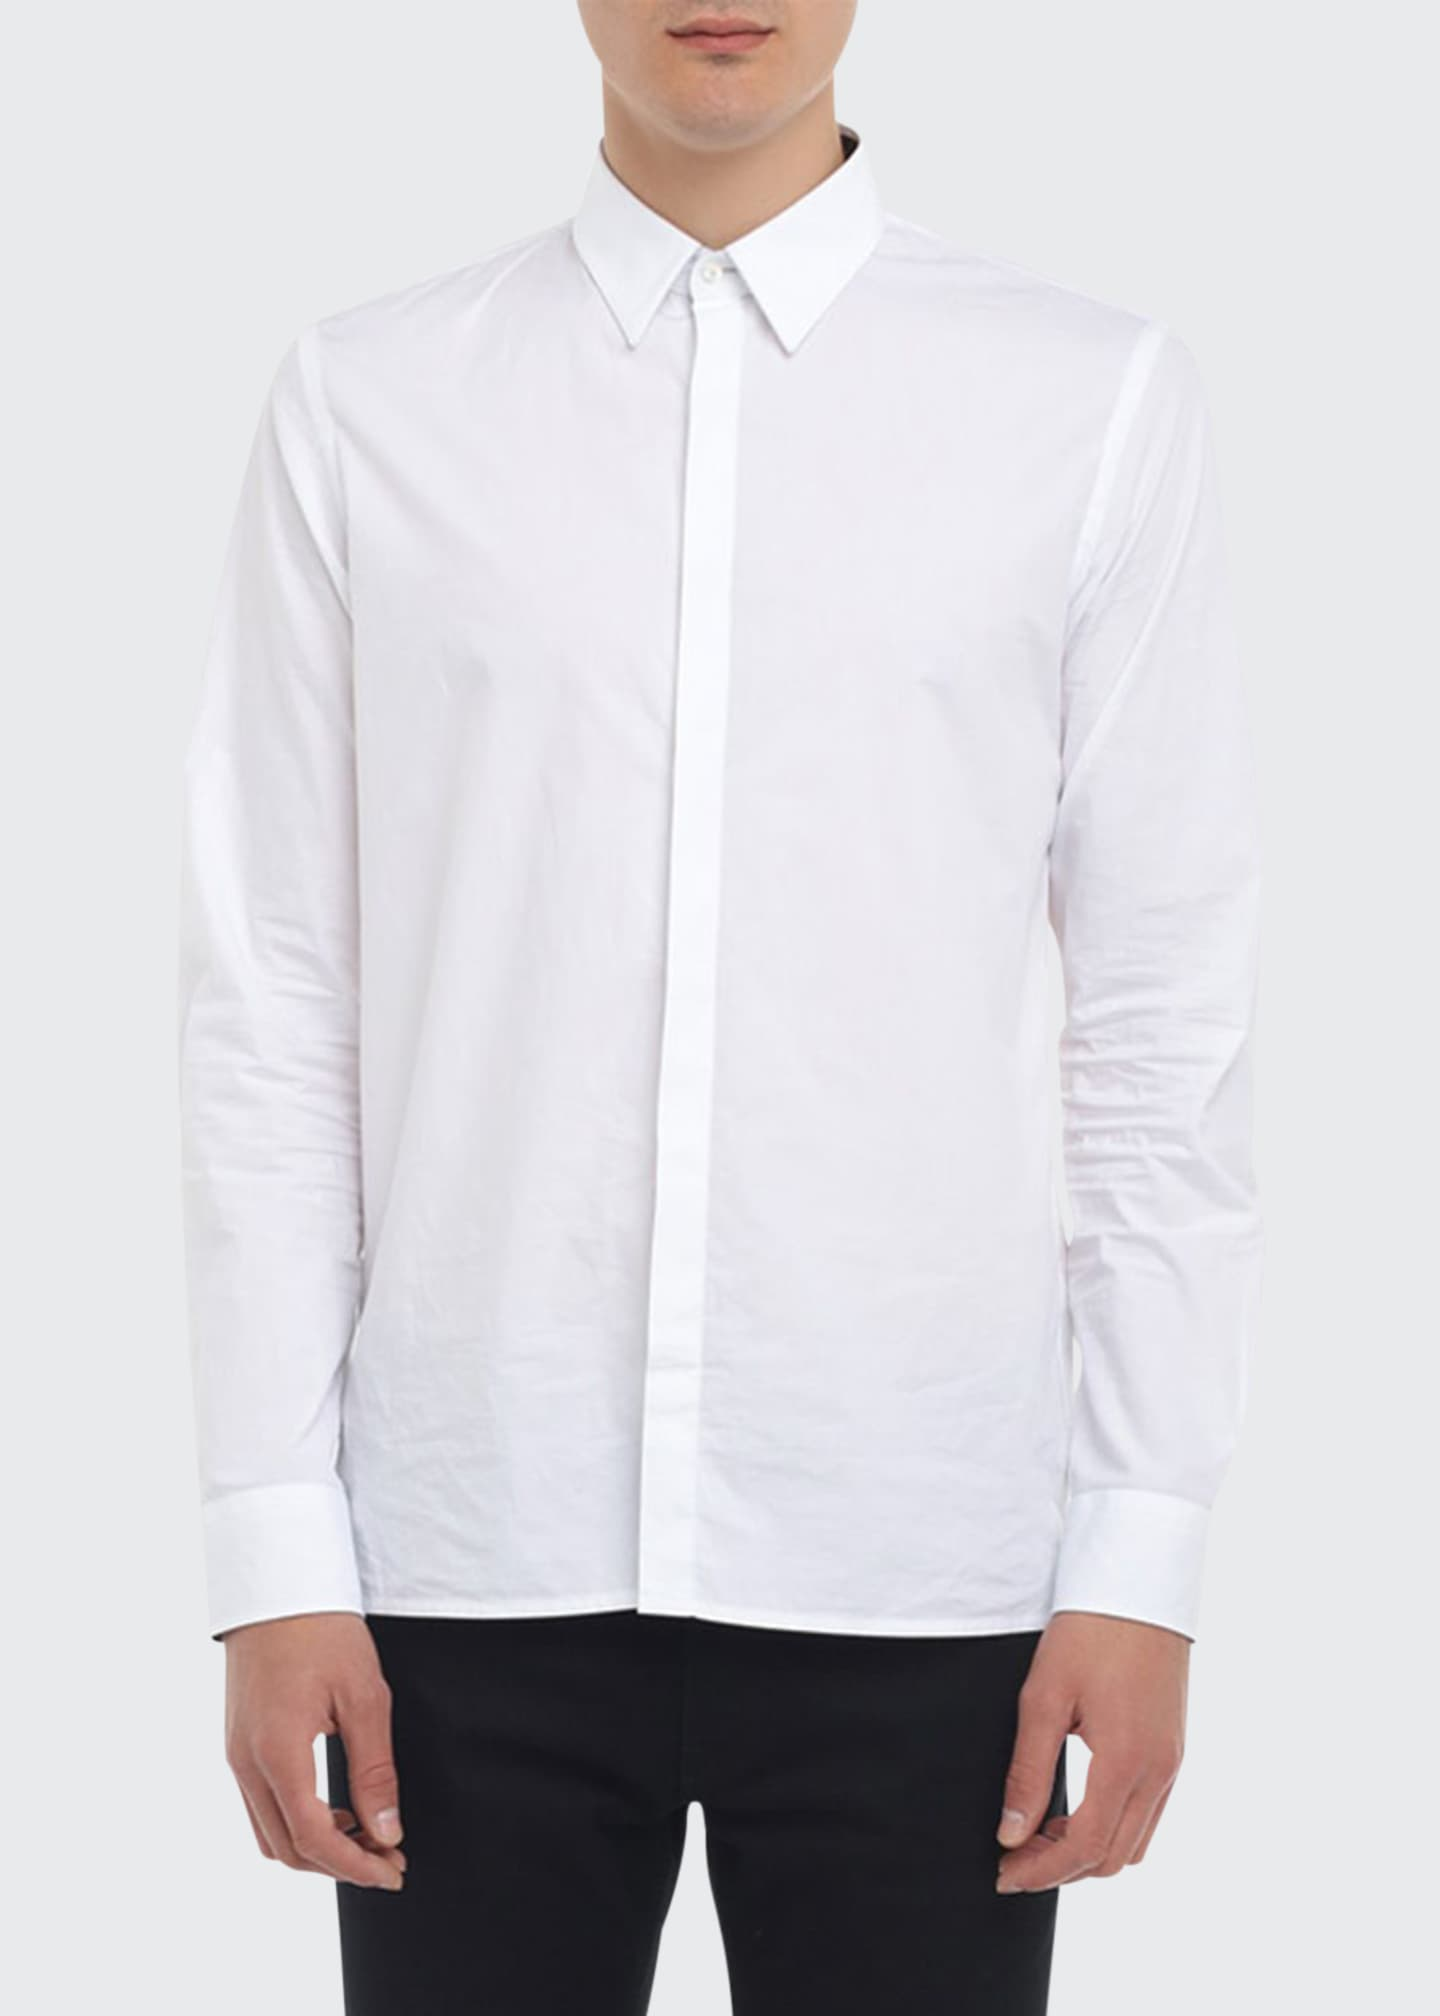 Fendi Men's FF-Detail Sport Shirt